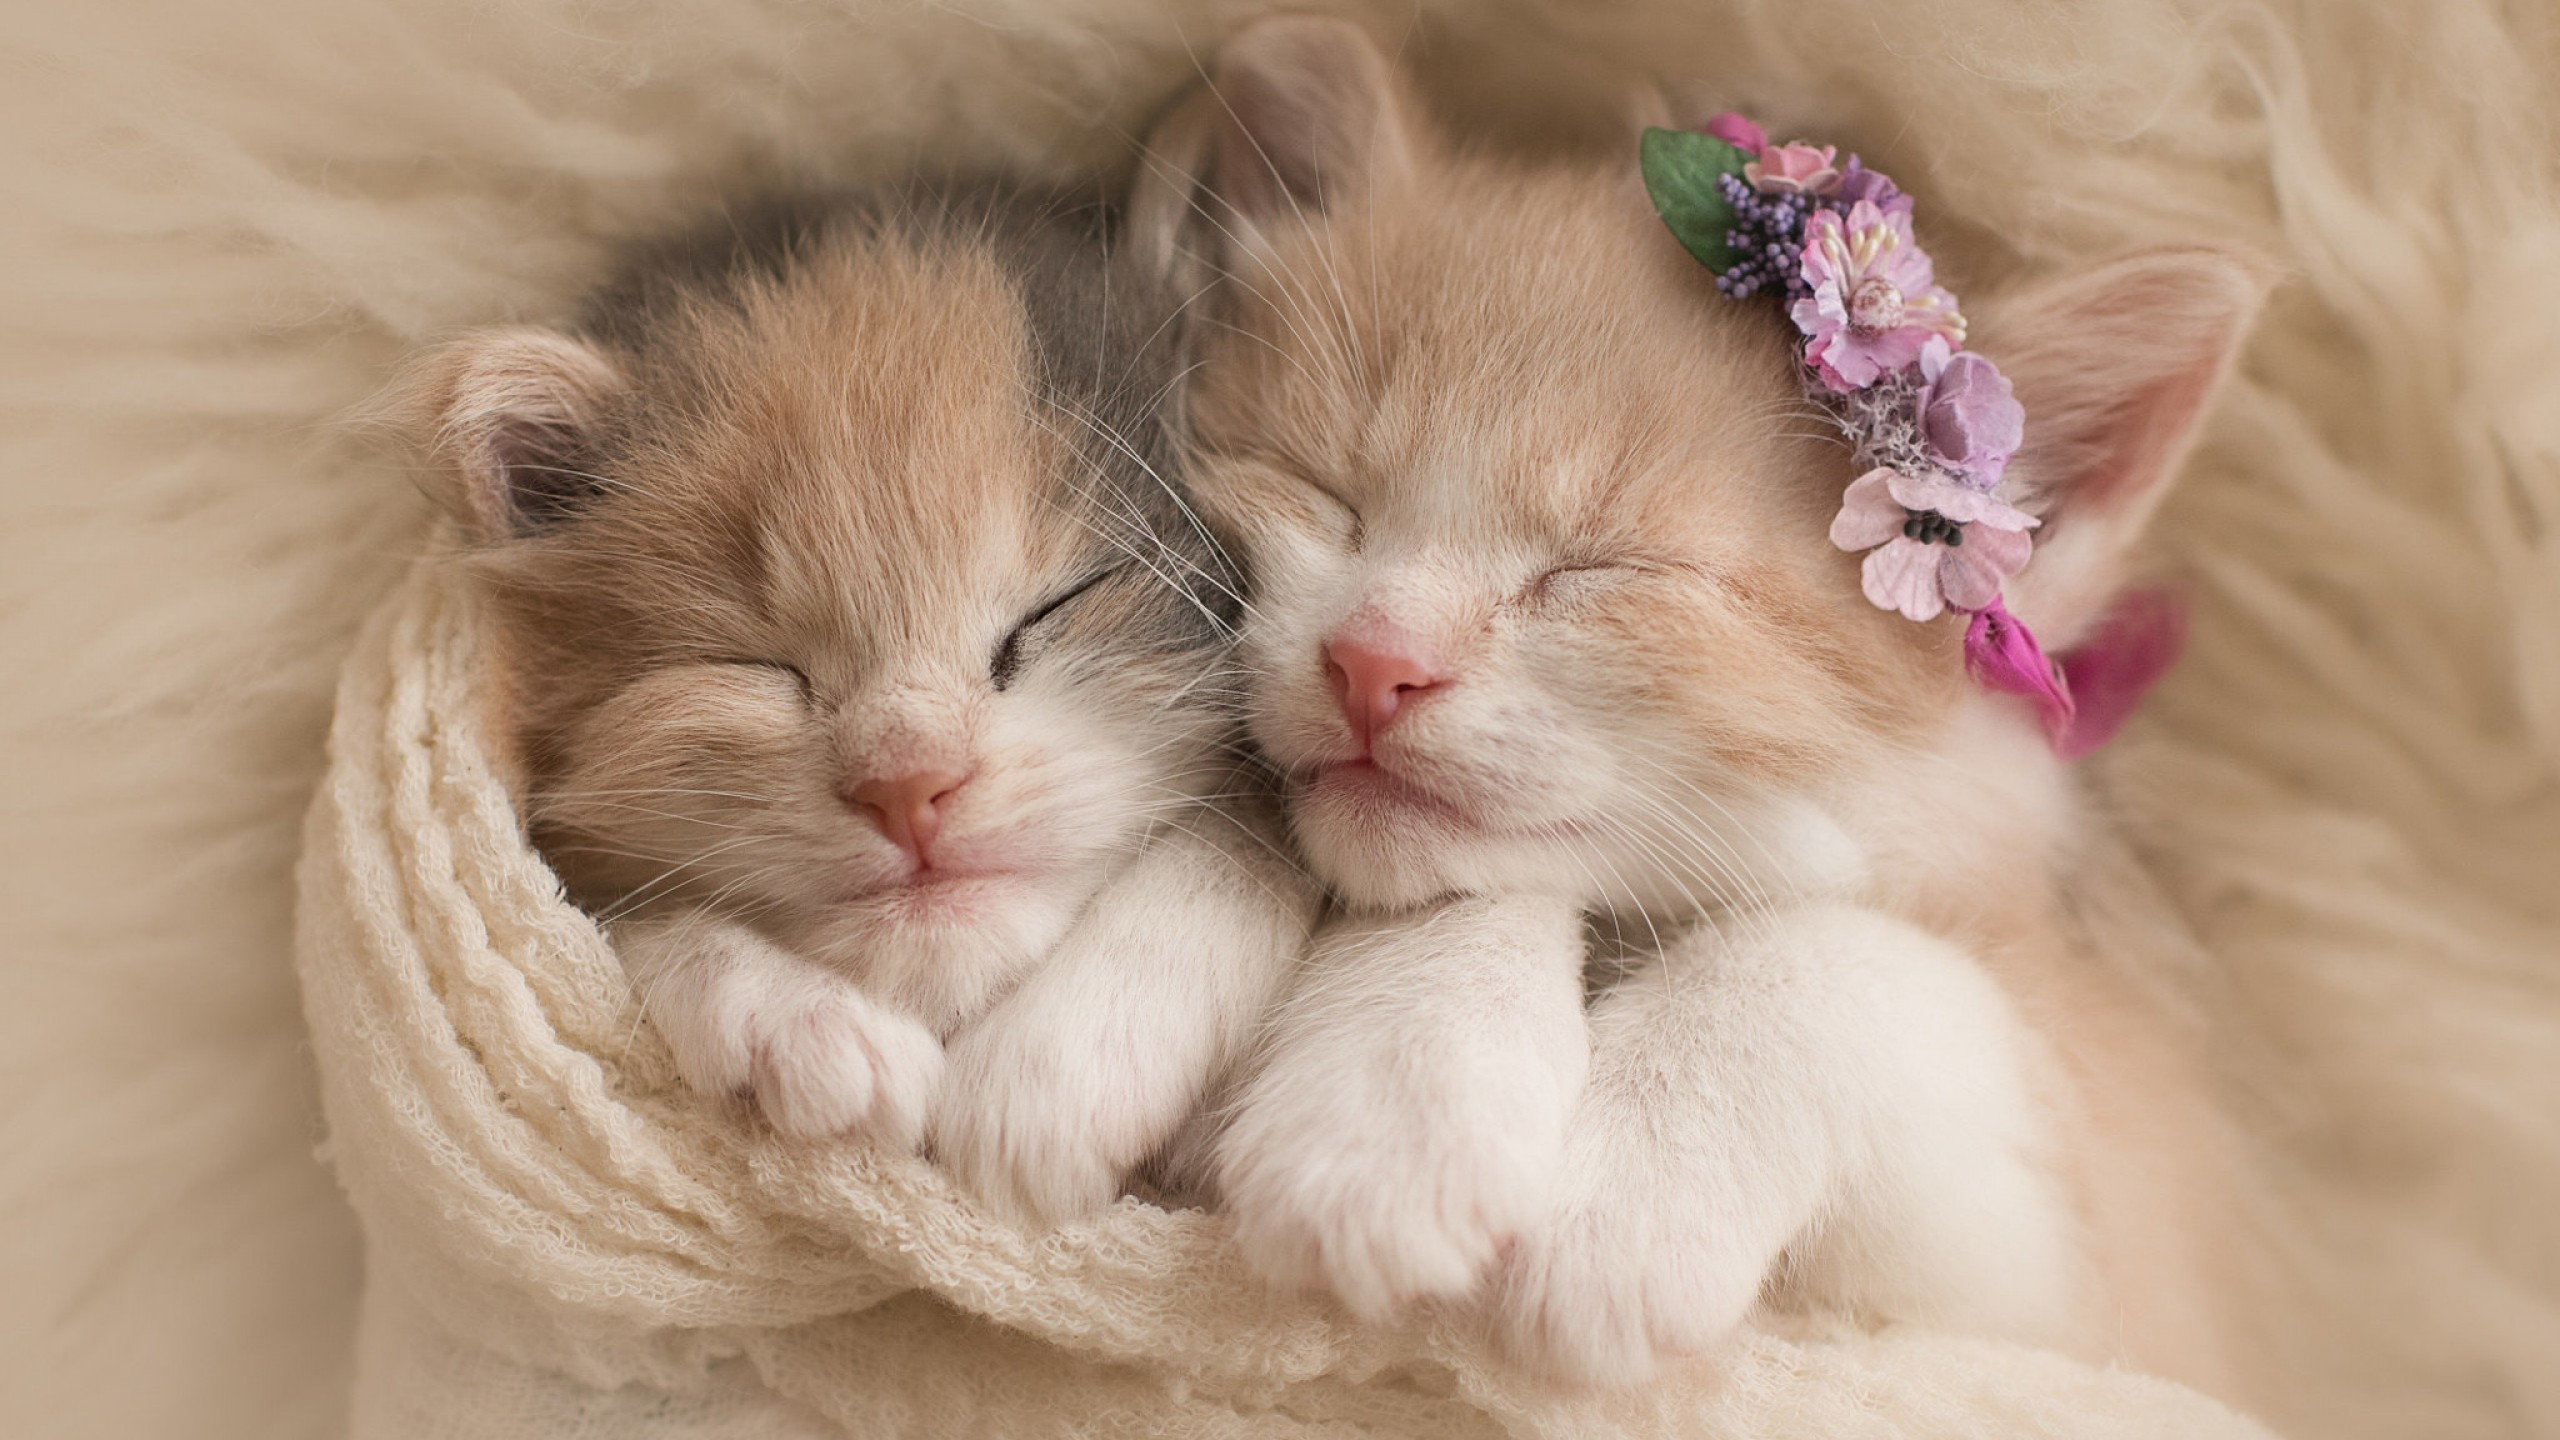 Res: 2560x1440, Cute kittens, Adorable, HD